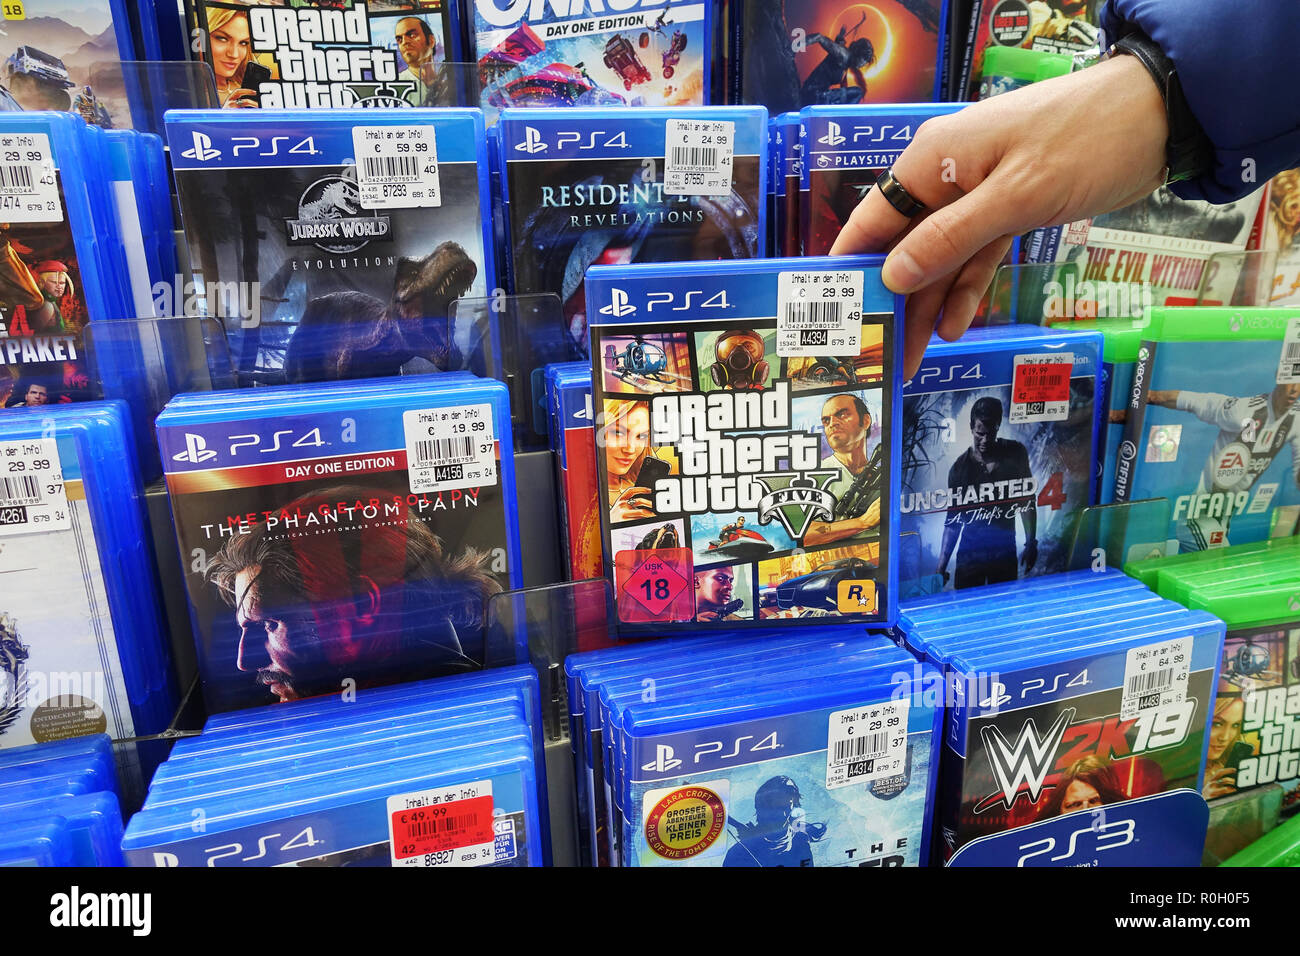 Tiendas Games Store Display Filled With Playstation 4 Games For A Home Video